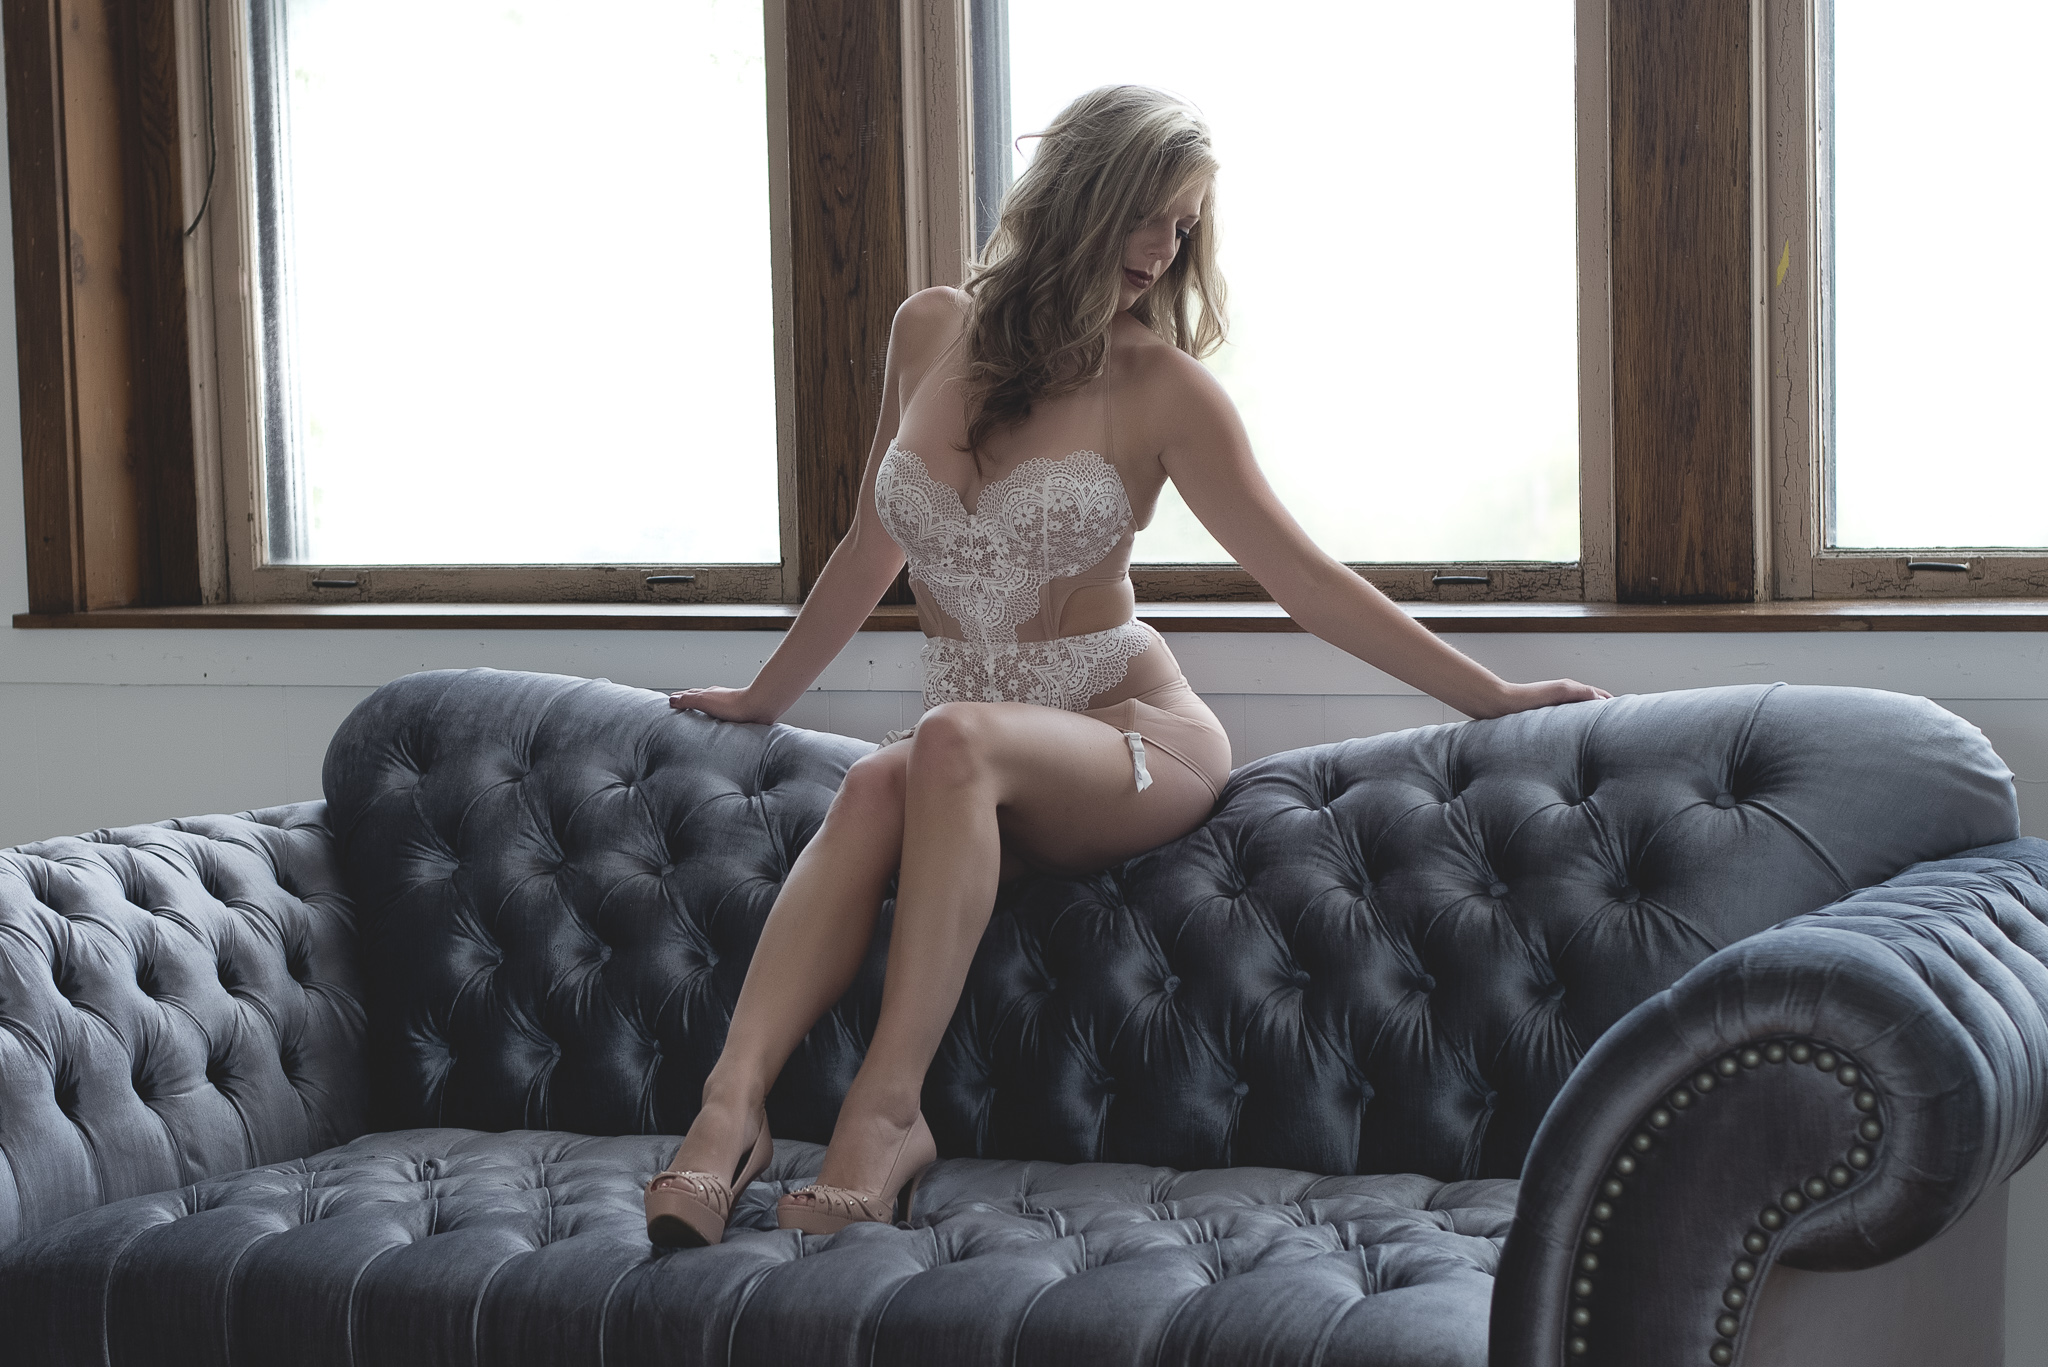 Ohio-Boudoir-Sheer-MissR-35.jpg